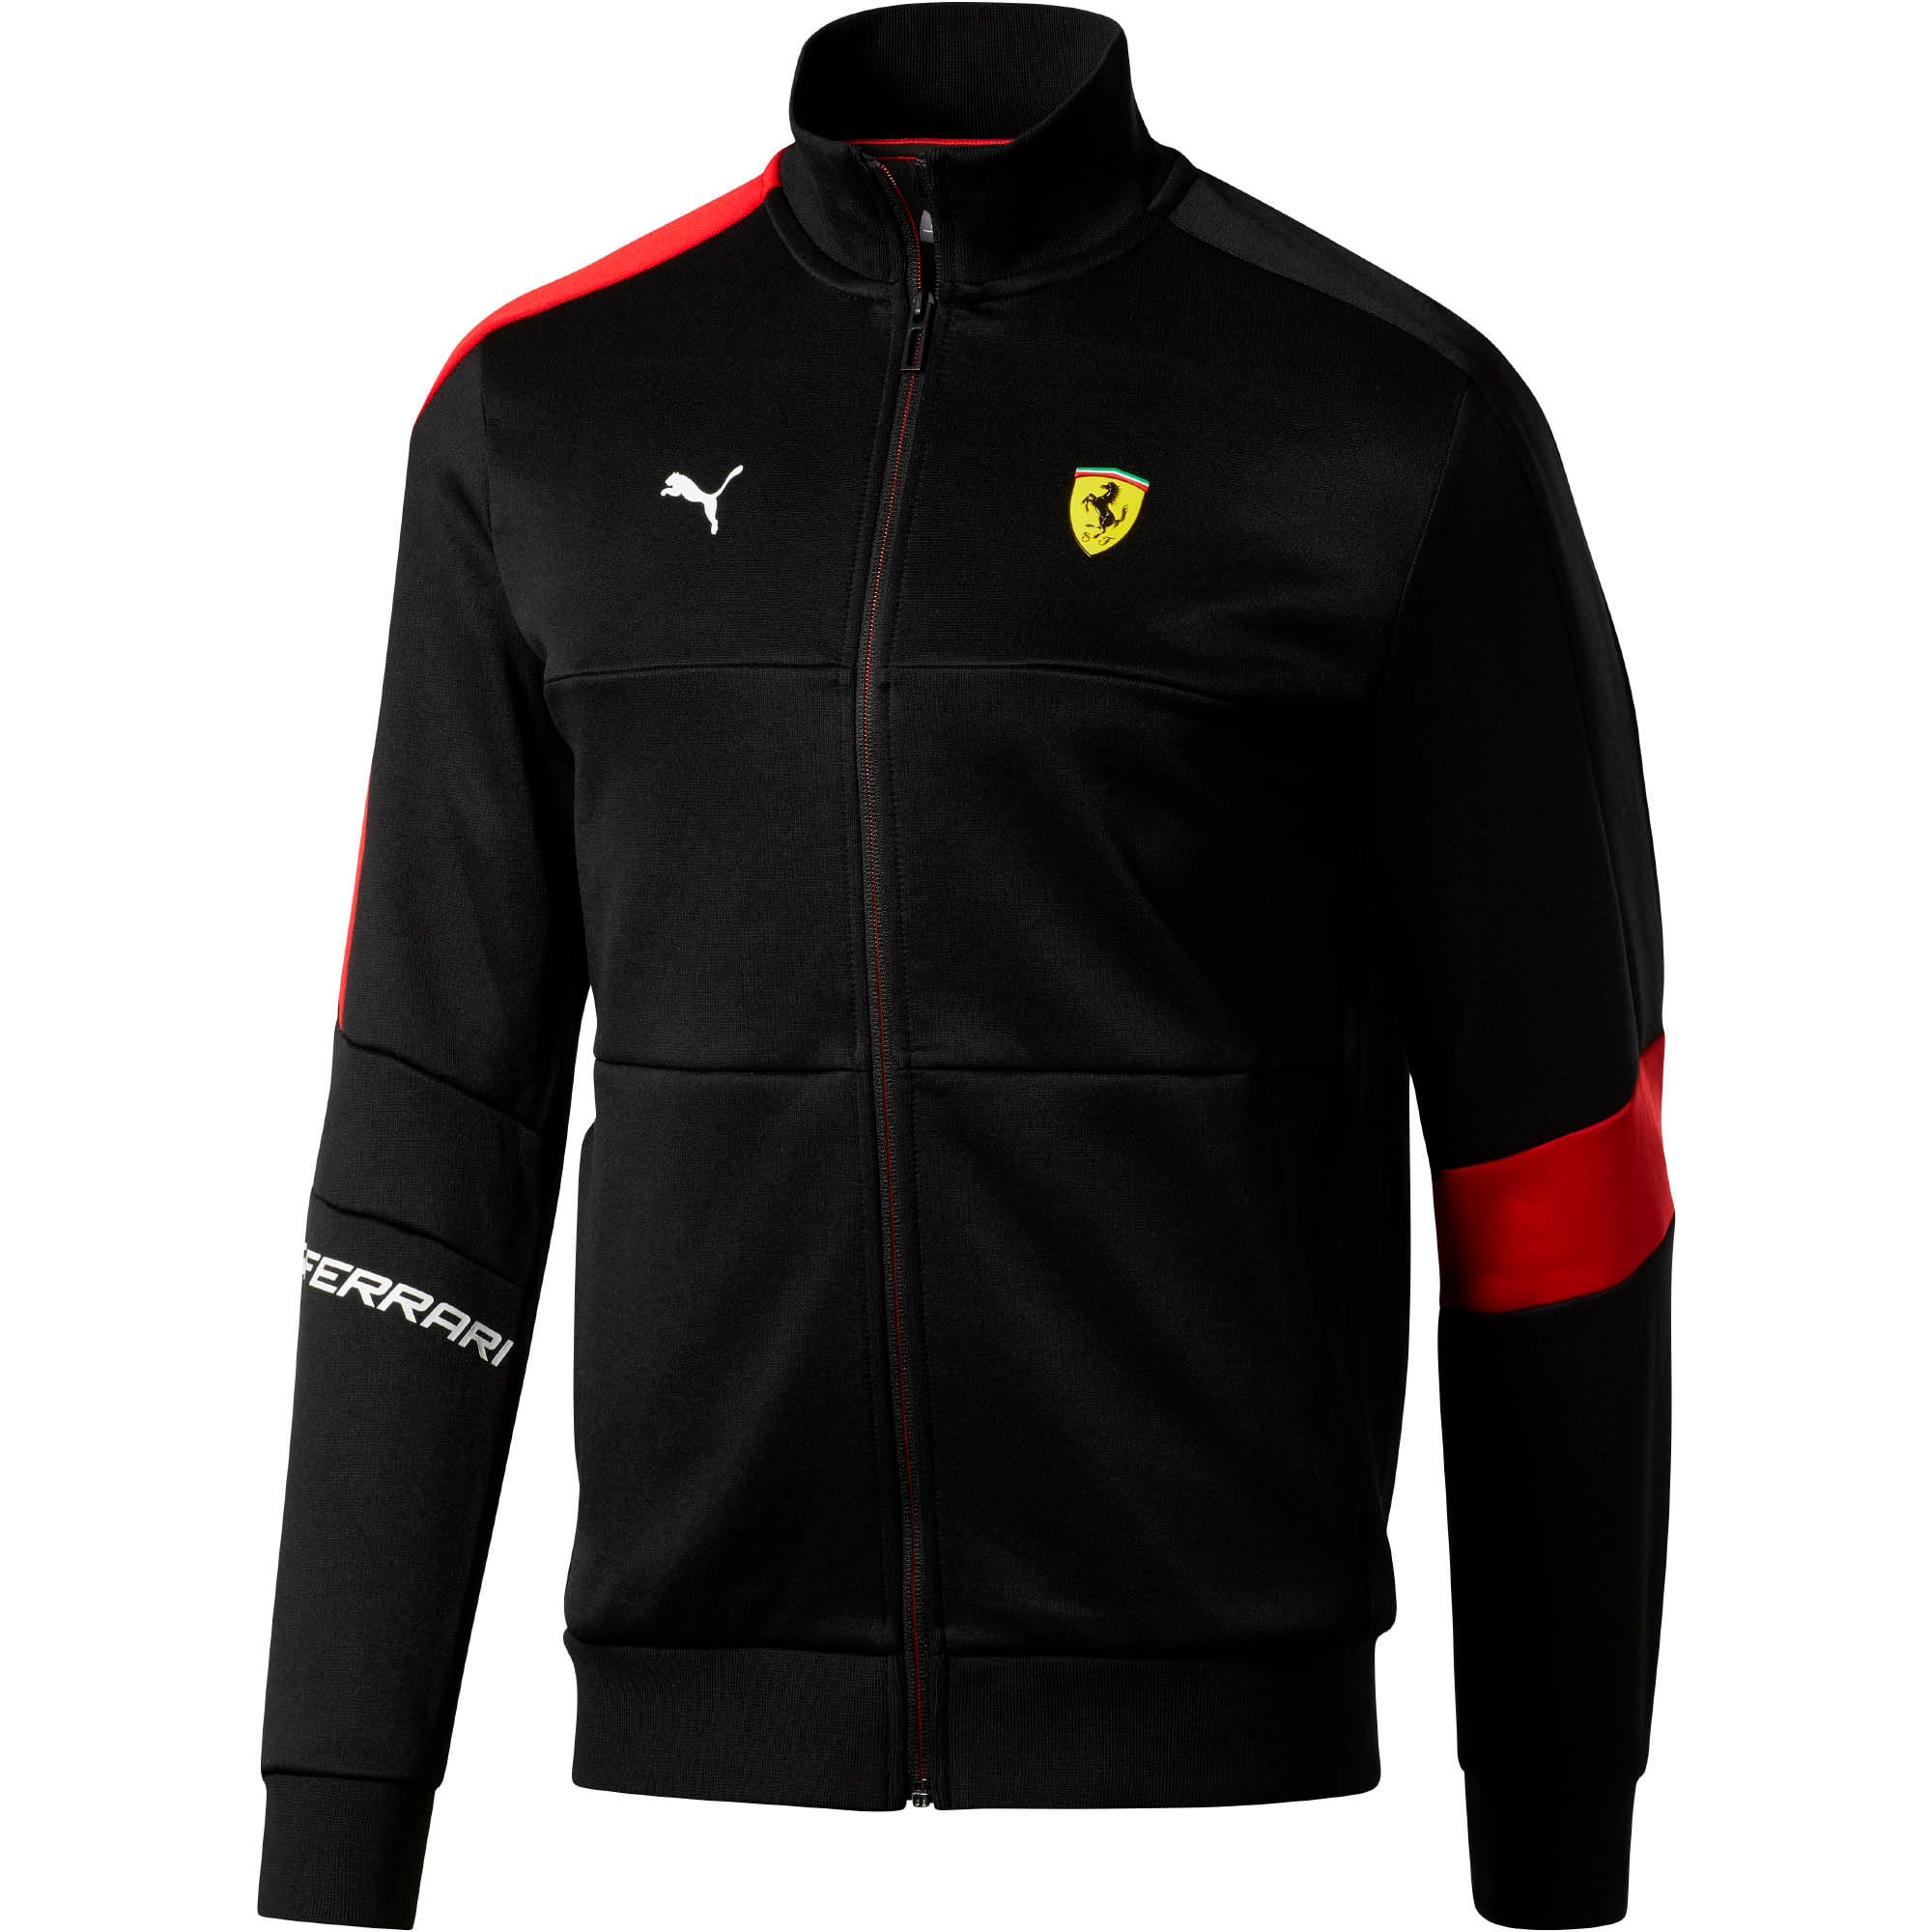 Thumbnail 1 of Scuderia Ferrari Men's T7 Track Jacket, Puma Black, medium